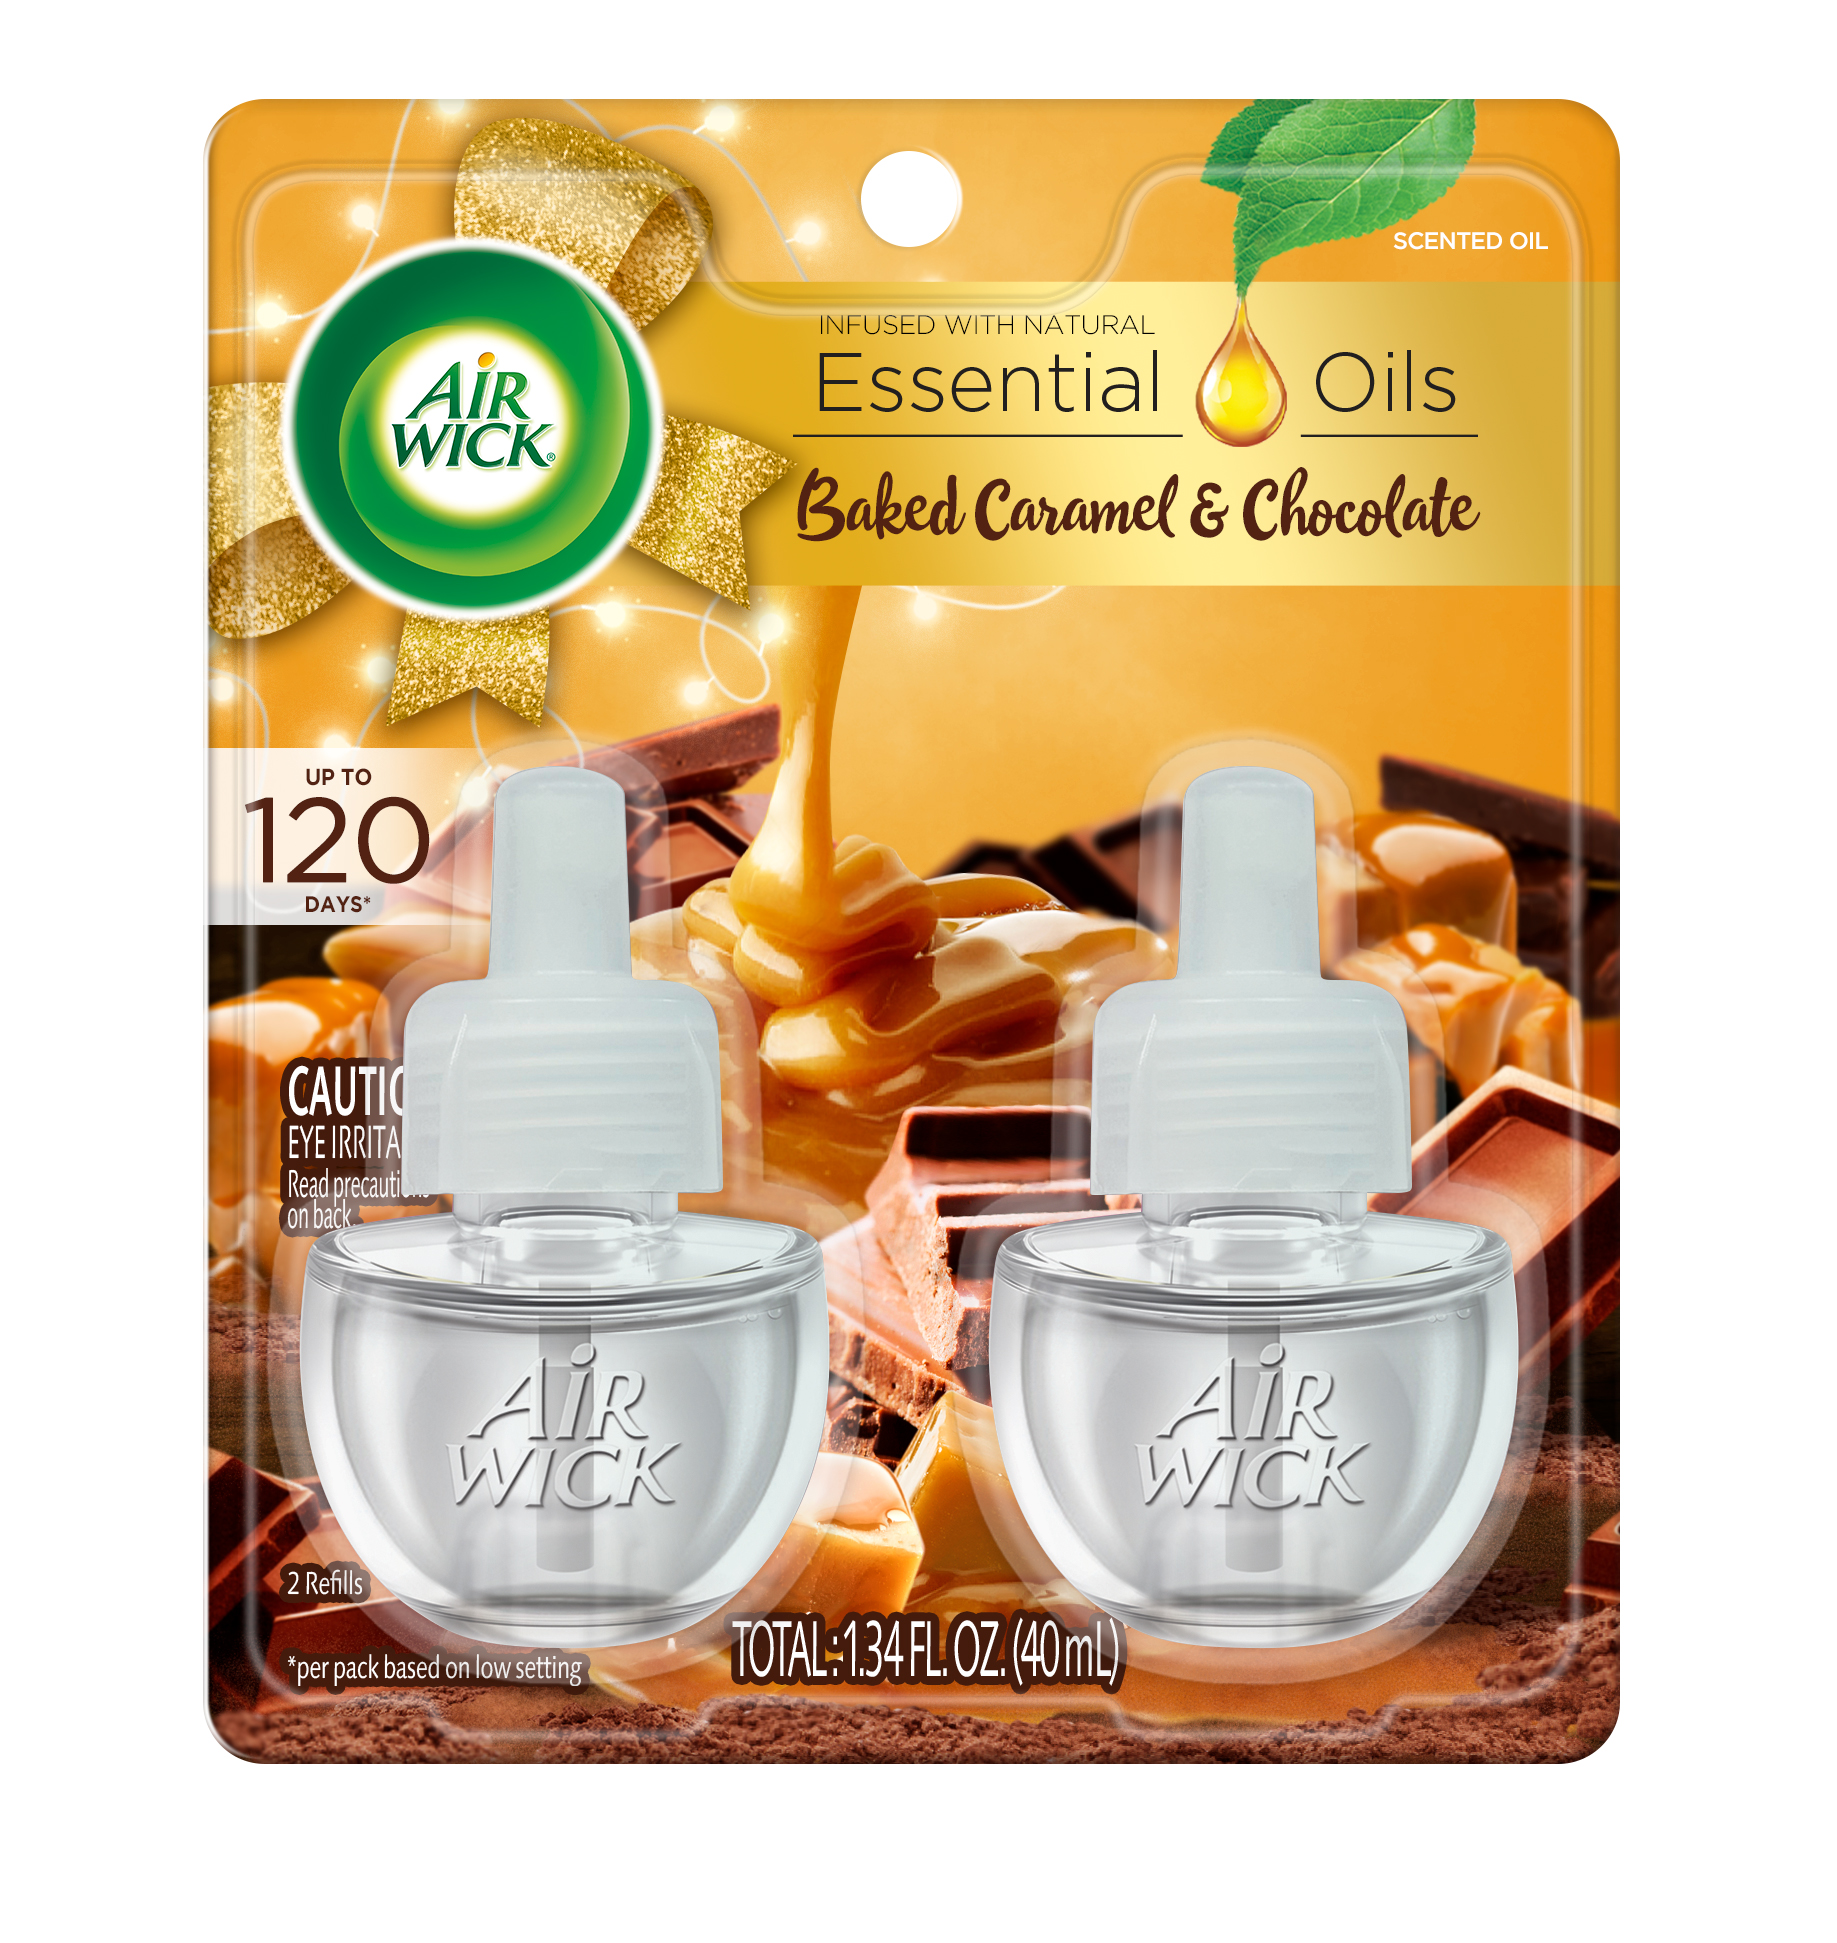 AIR WICK® Scented Oil - Baked Caramel & Chocolate